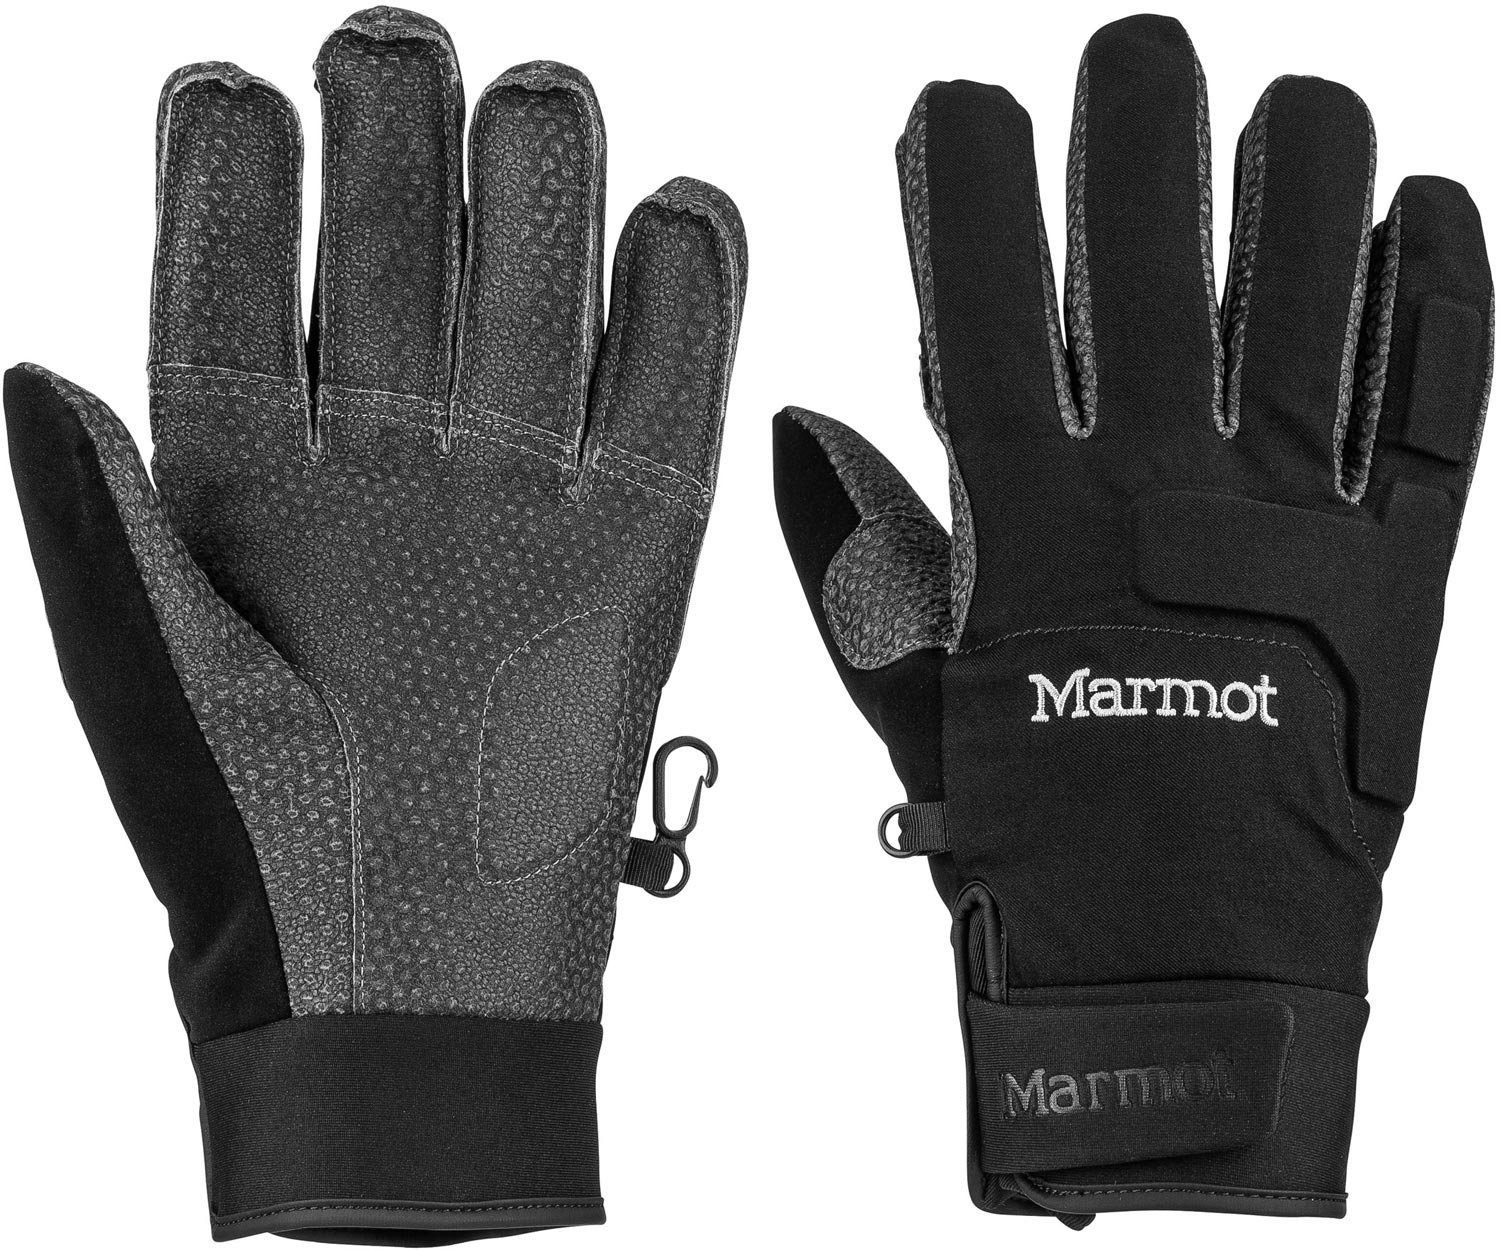 81nDNJi WSL - Marmot XT Glove, Men, Waterproof & Breathable - great for skiing, biking and climbing